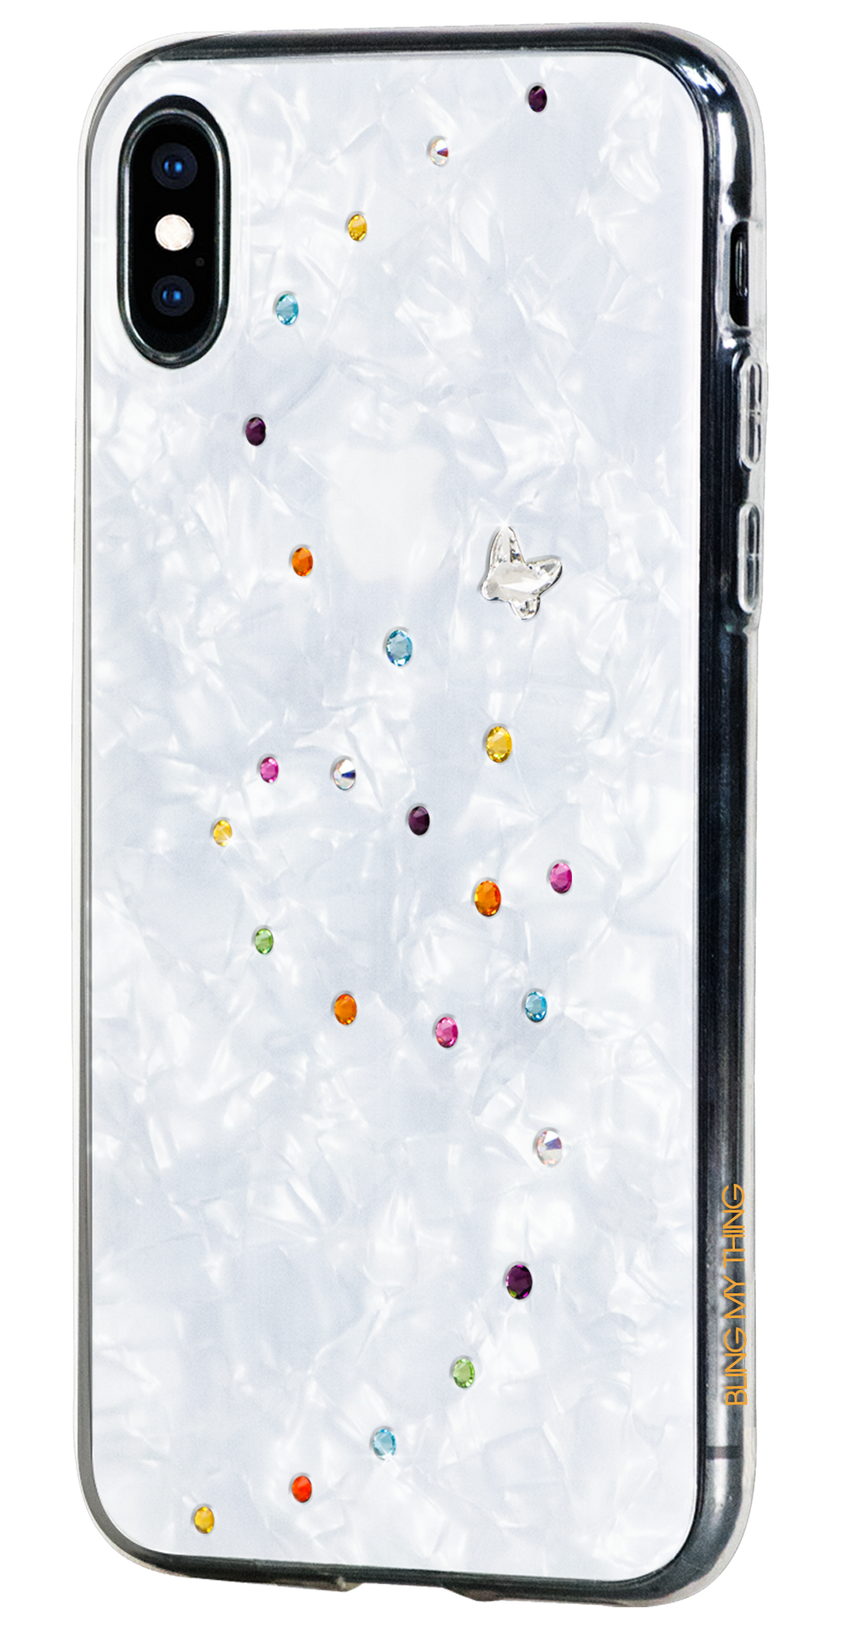 PAPILLON ᛫ PEARL WHITE ᛫ double-layered TPU cover with Swarovski Crystals - for iPhone XS Max